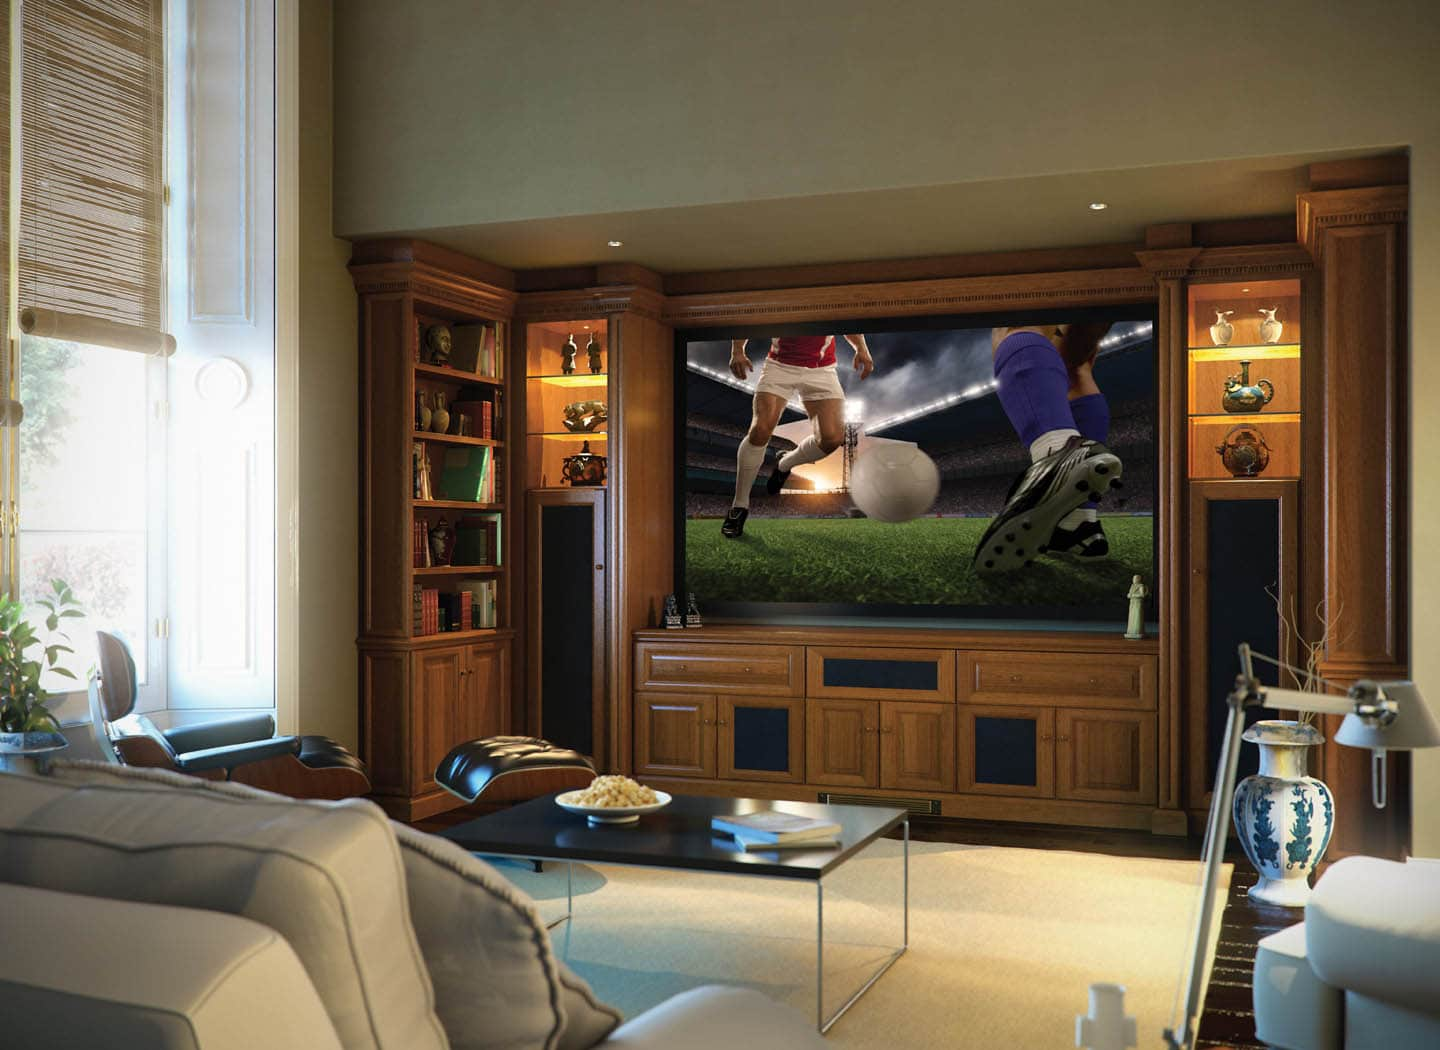 Traditional home cinema showing a football match